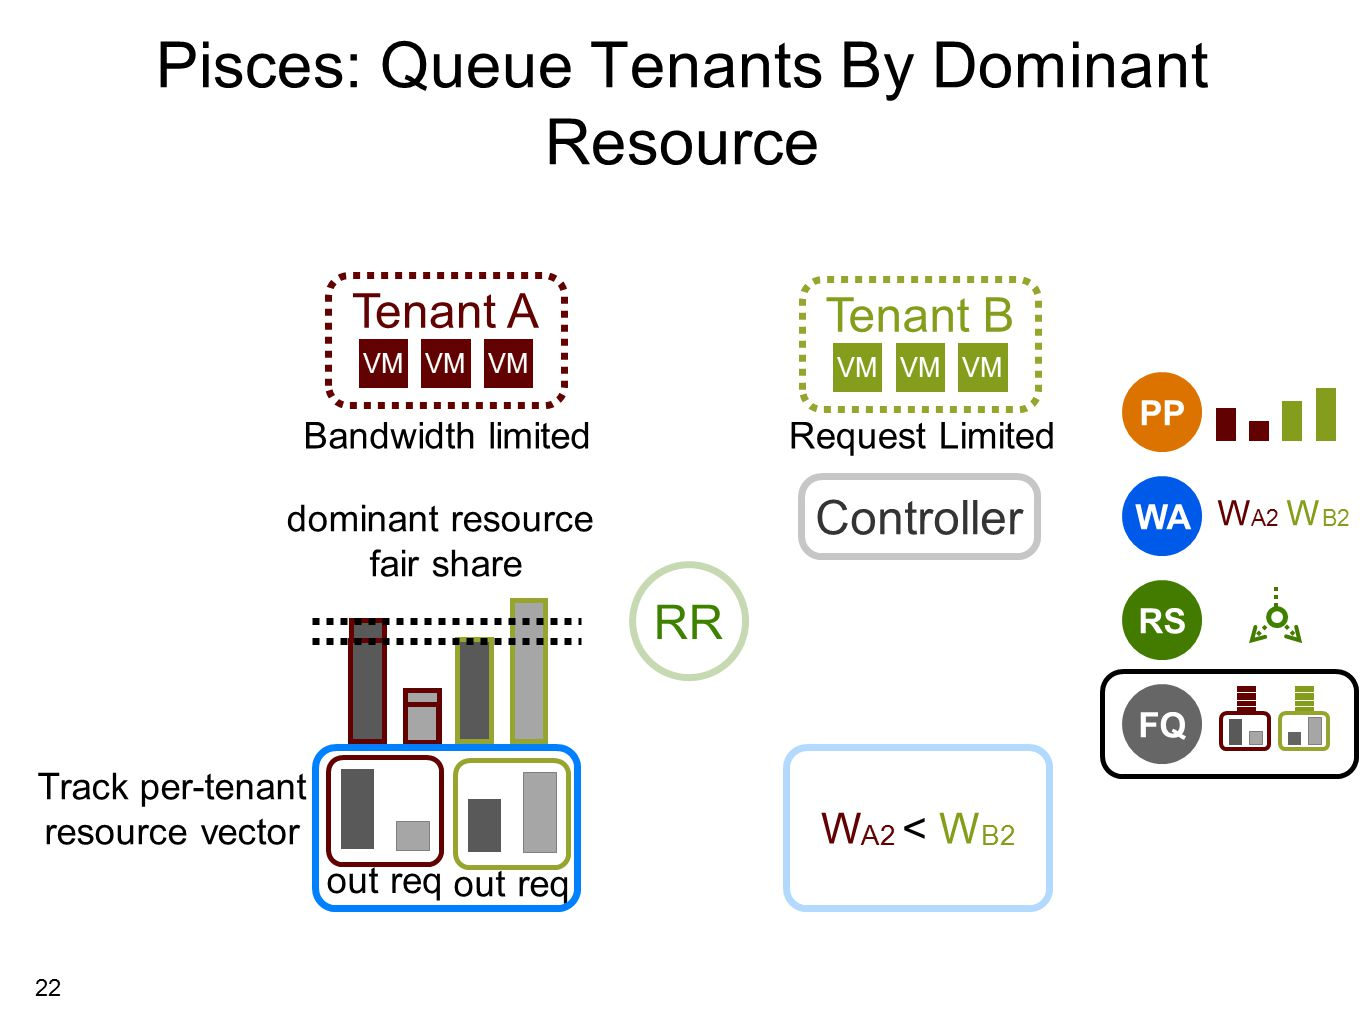 22 Pisces: Queue Tenants By Dominant Resource Bandwidth limitedRequest Limited outreq outreq Tenant A Tenant B VM bottlenecked by out bytes Track per-